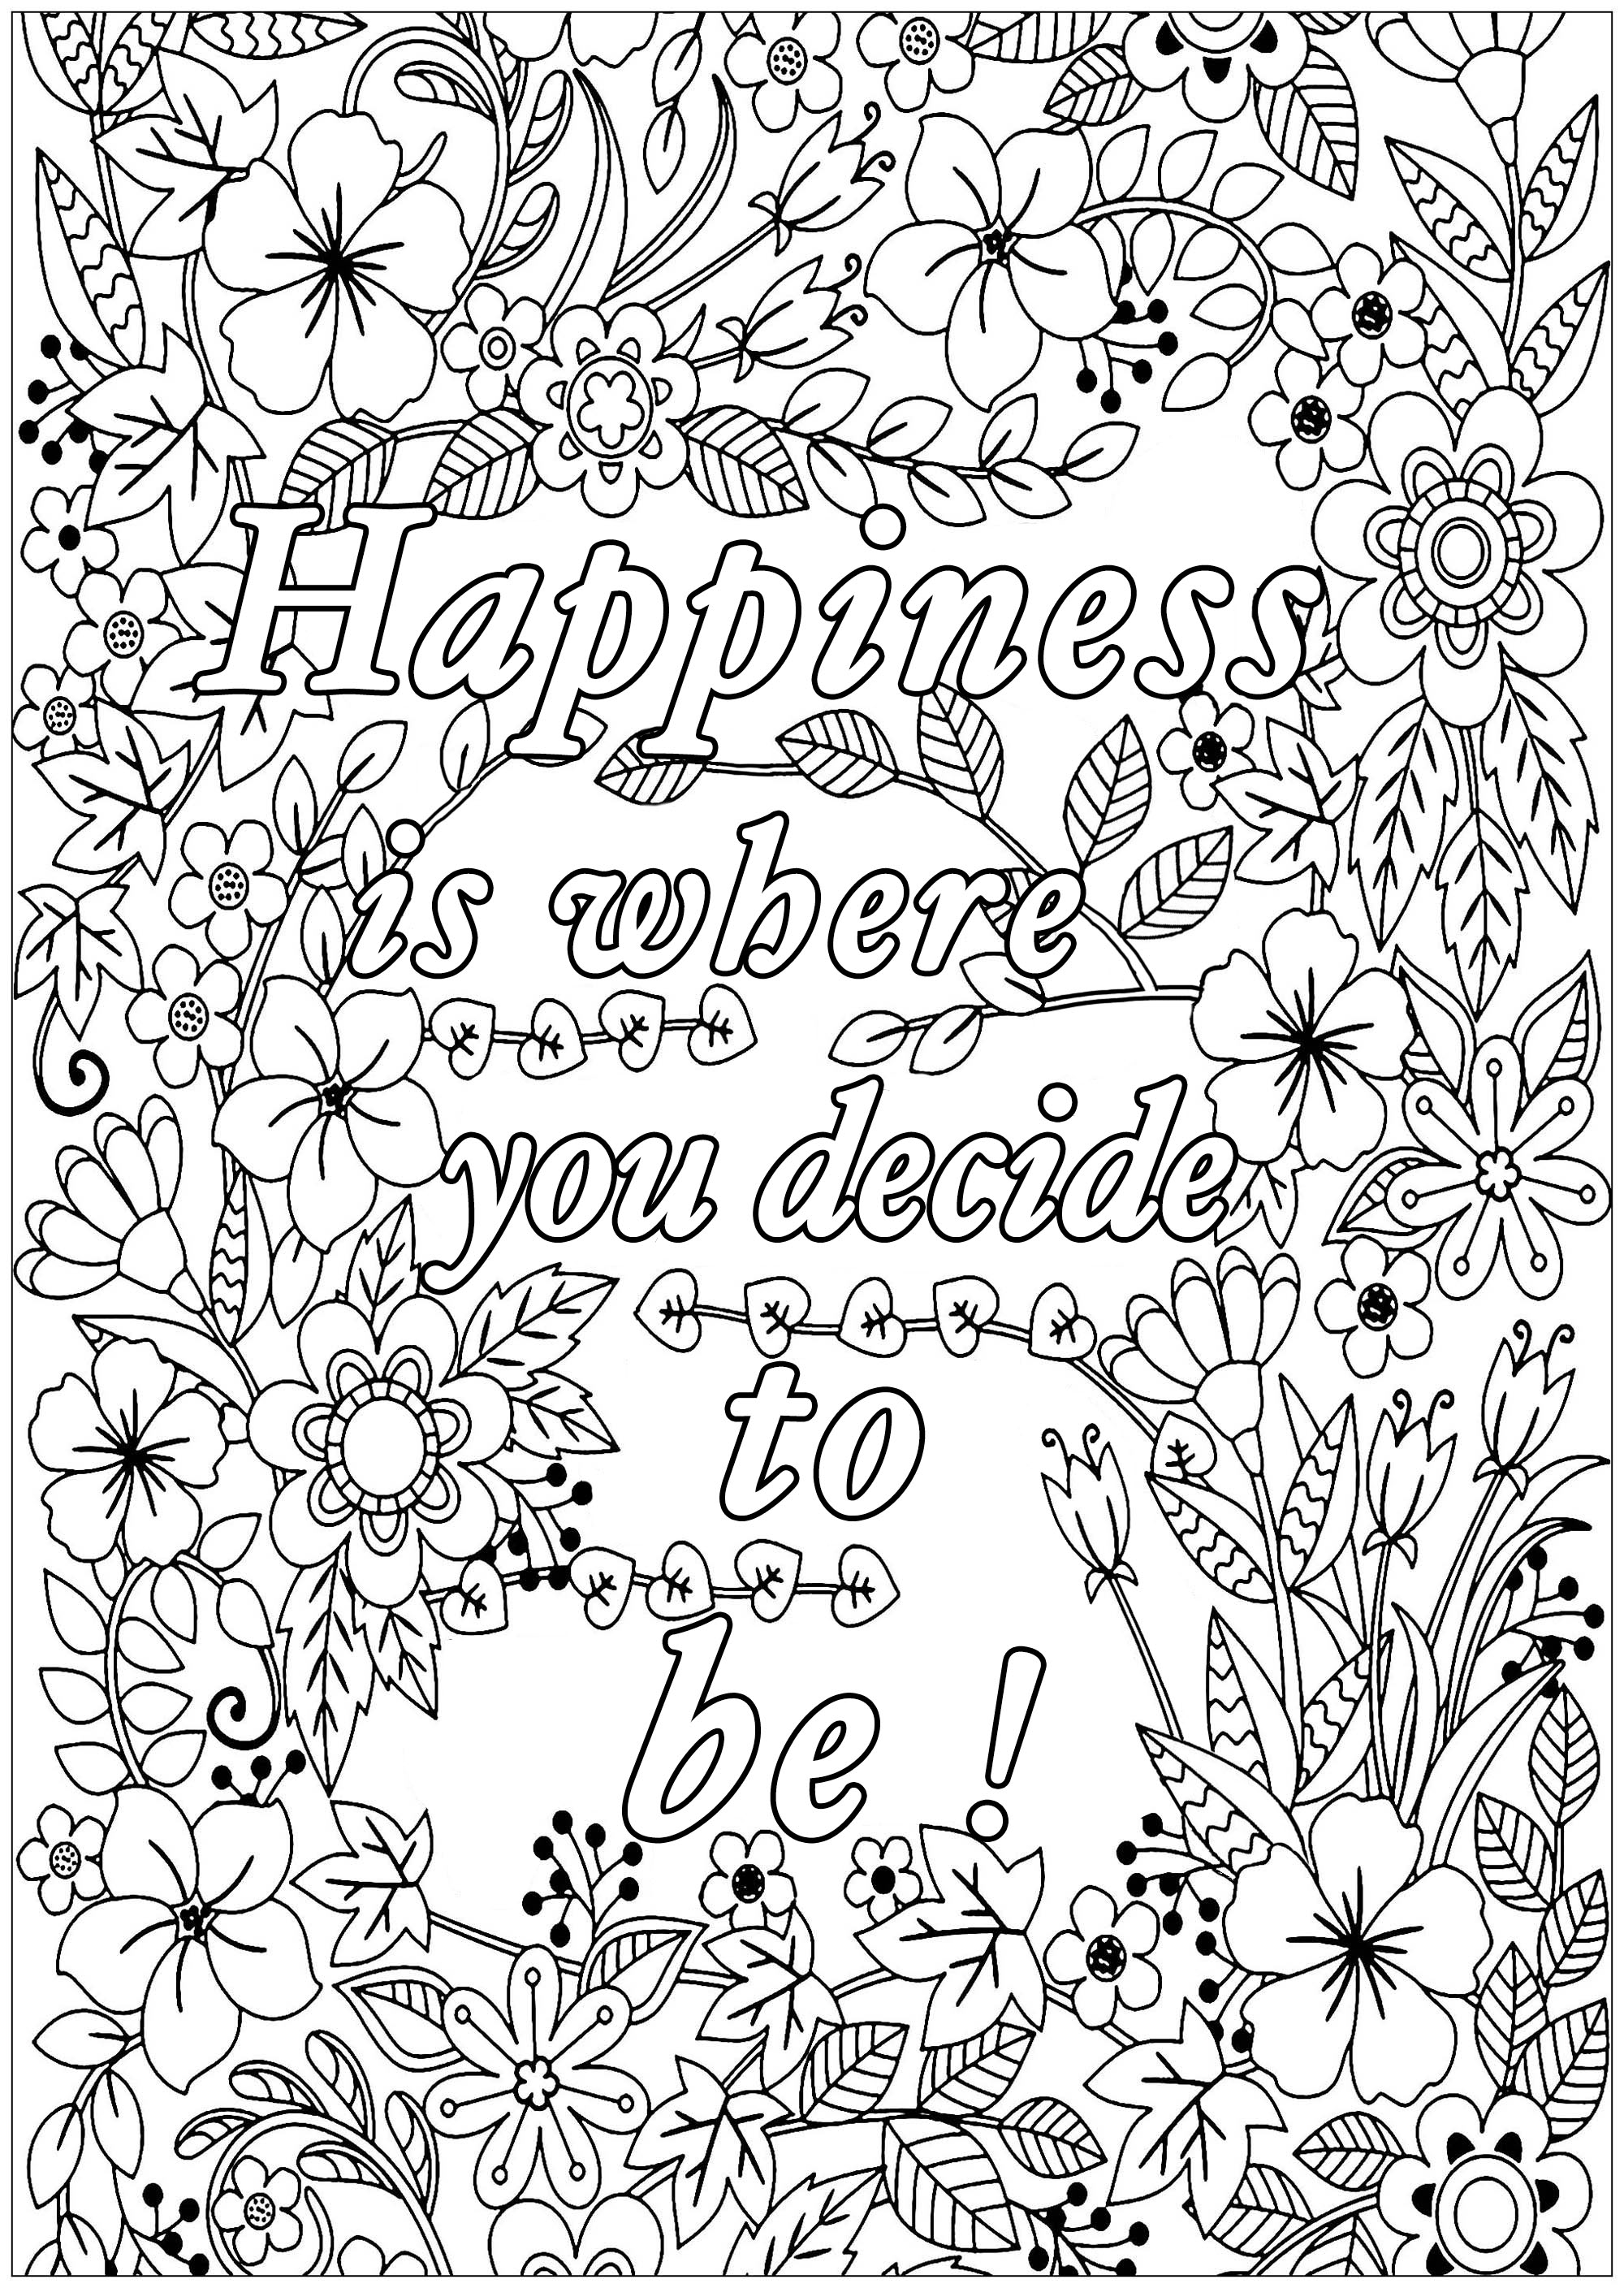 Happiness is where you decide to be - Positive & inspiring ...   free coloring pages quotes